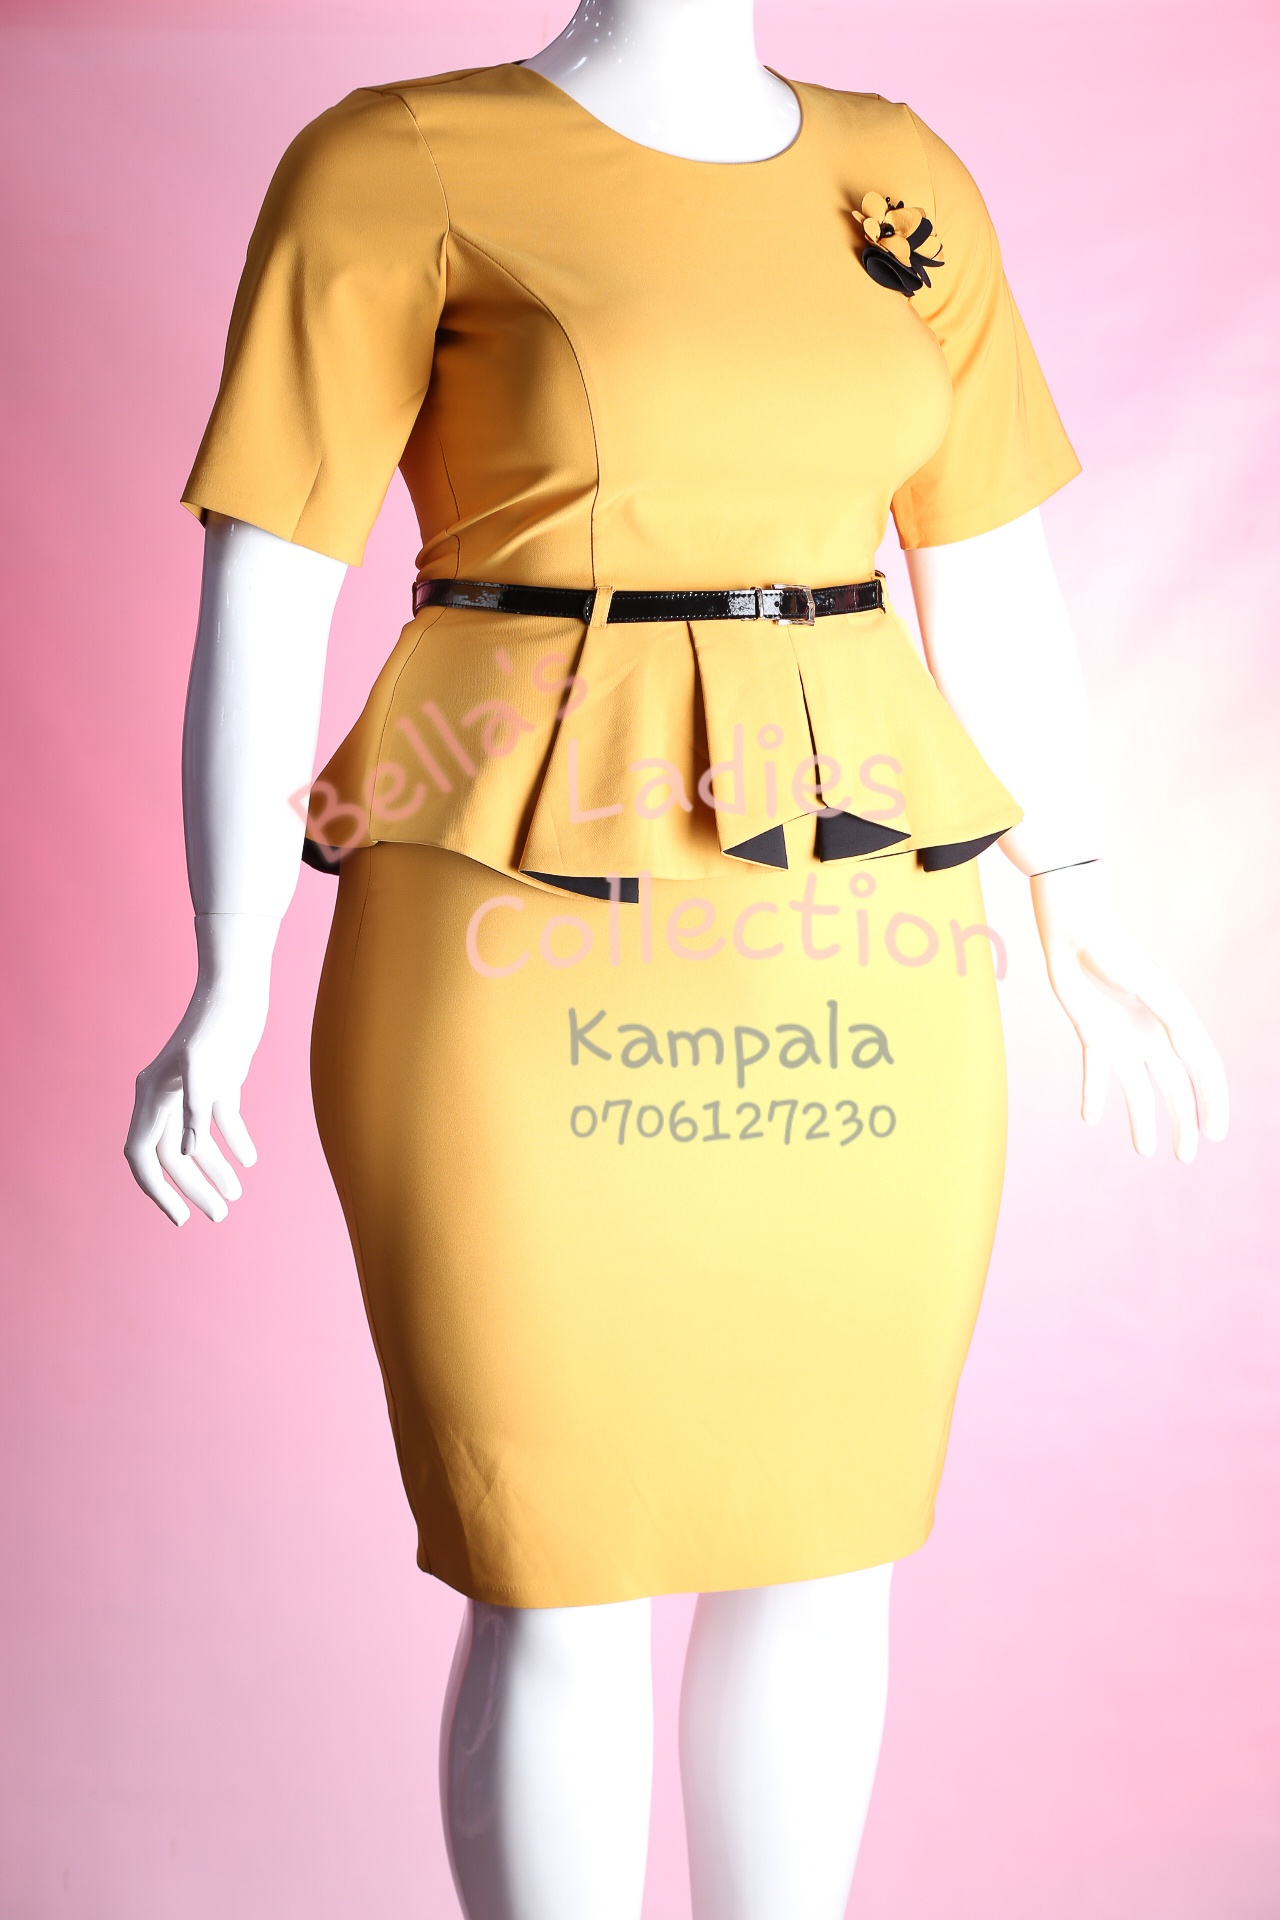 Office Wear Kampala